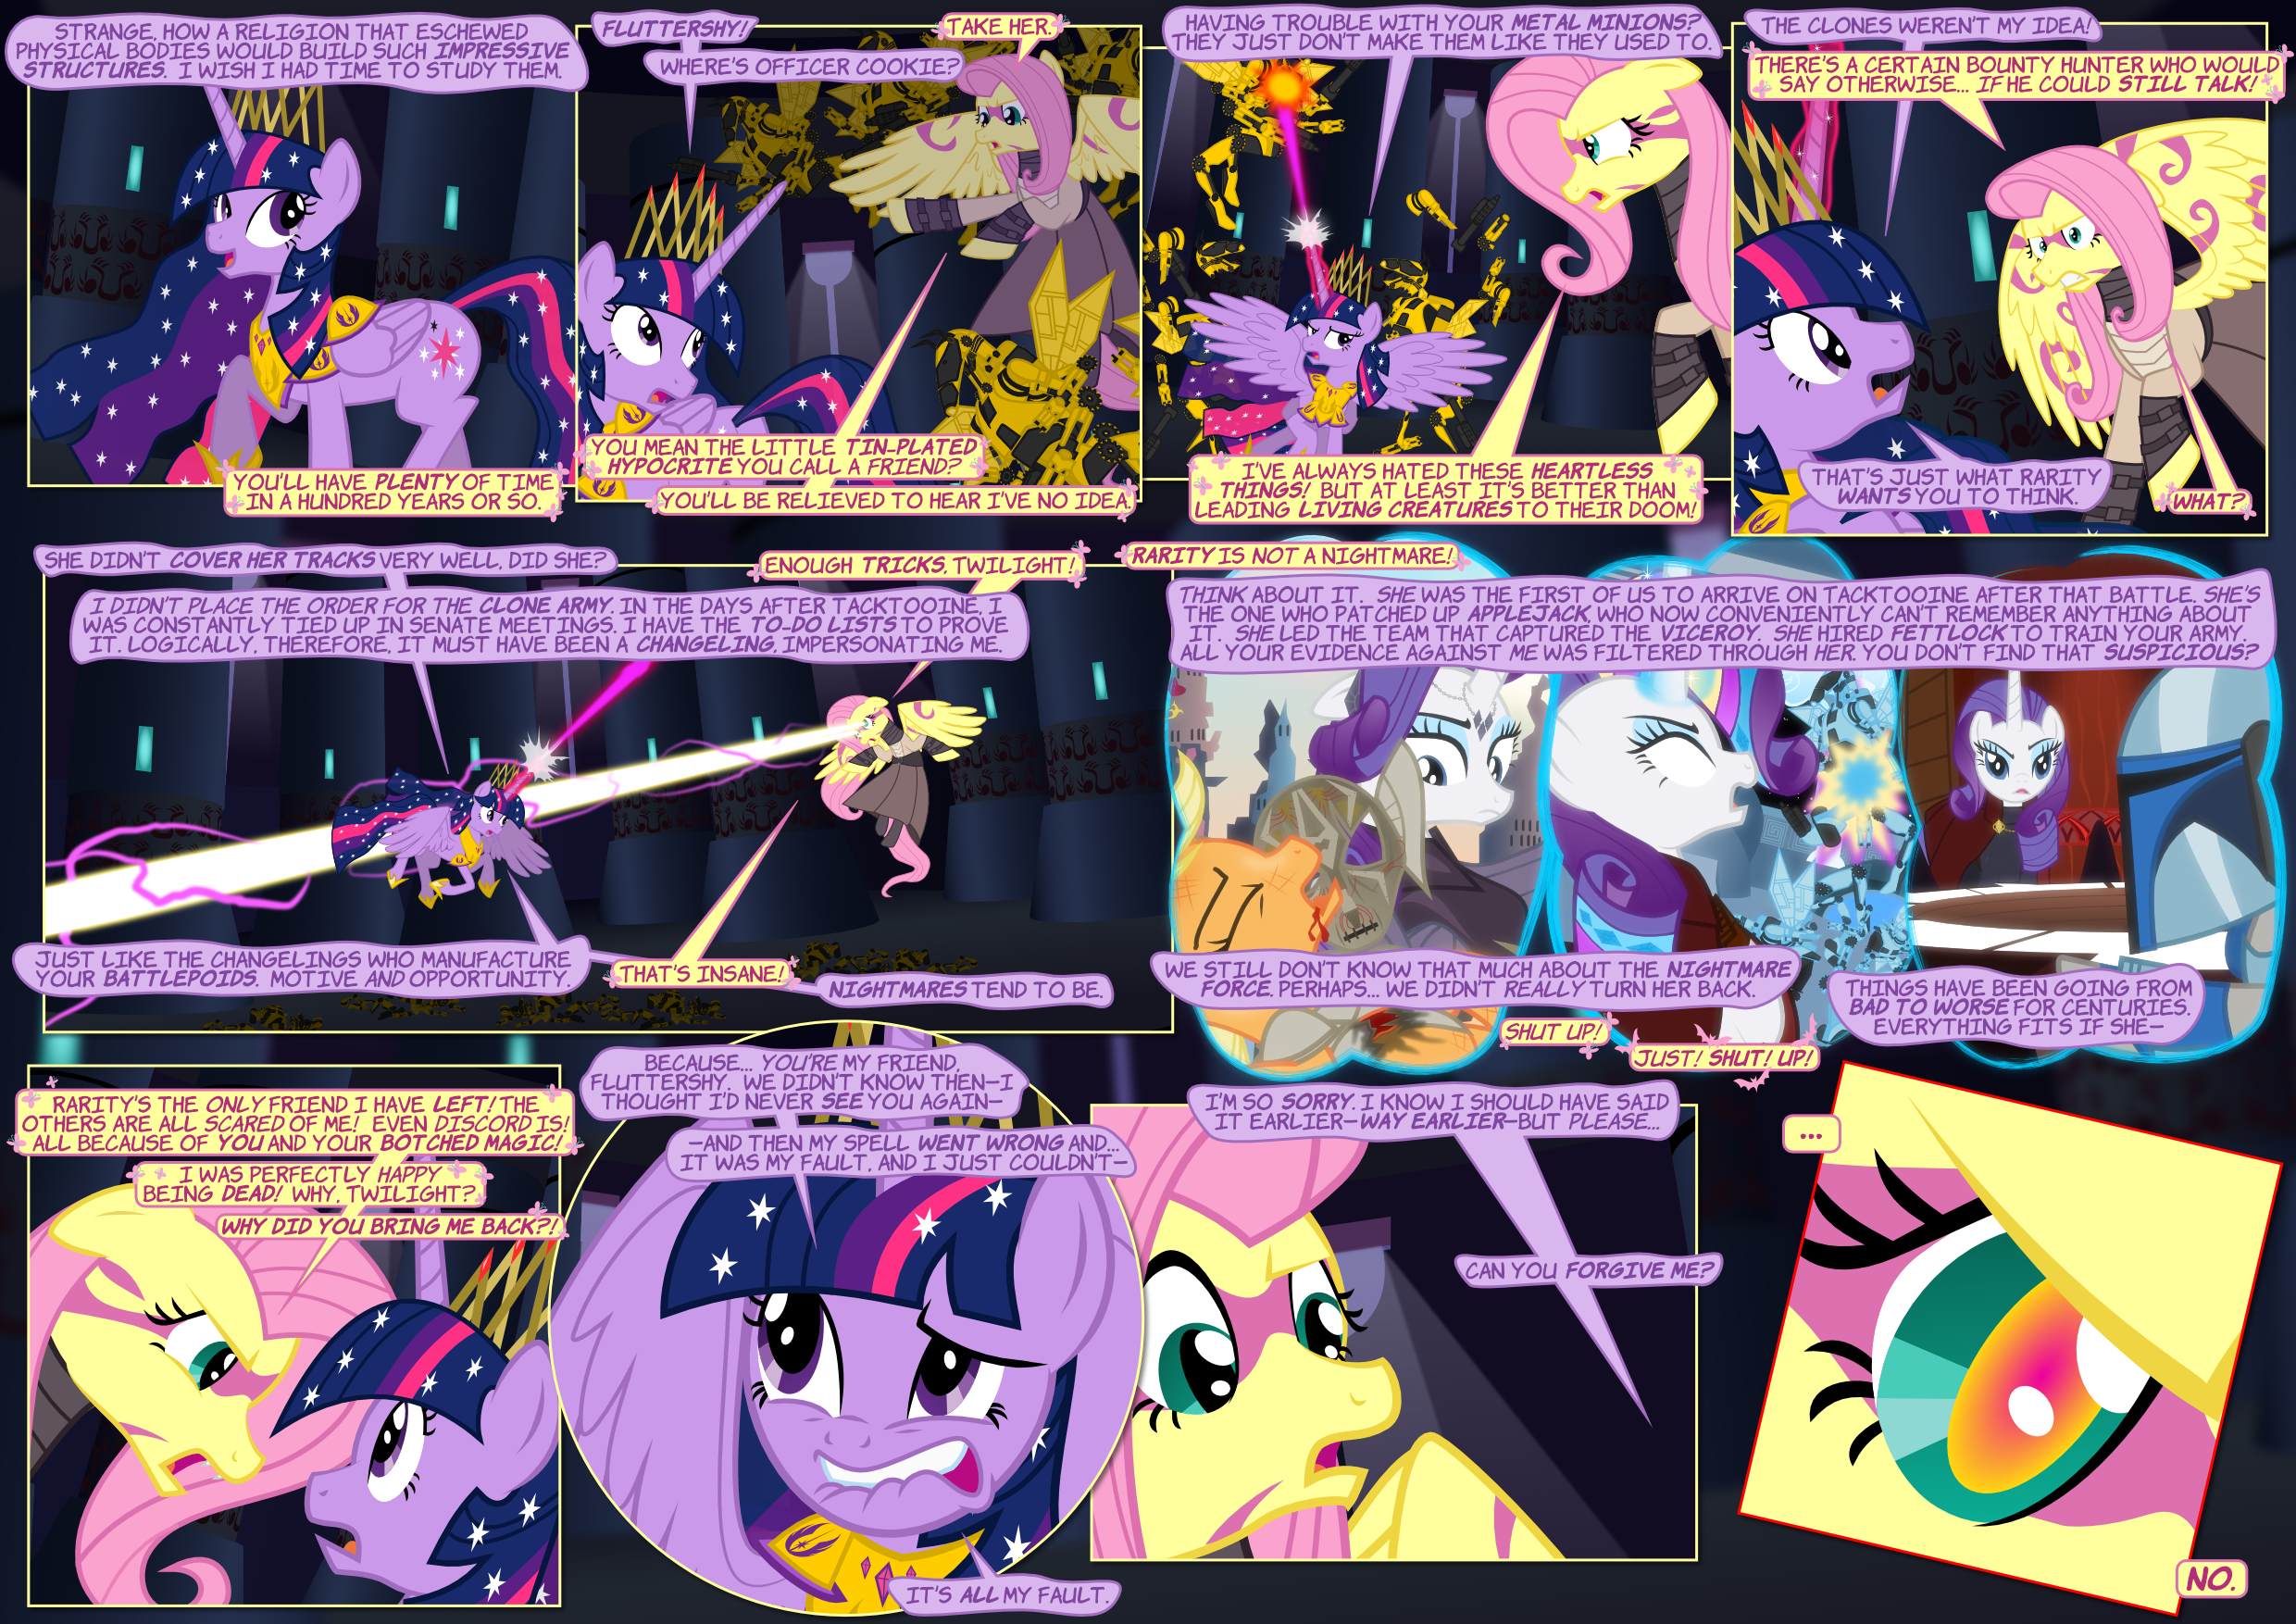 The Pone Wars 5.12-13: Better 600 Years Late...